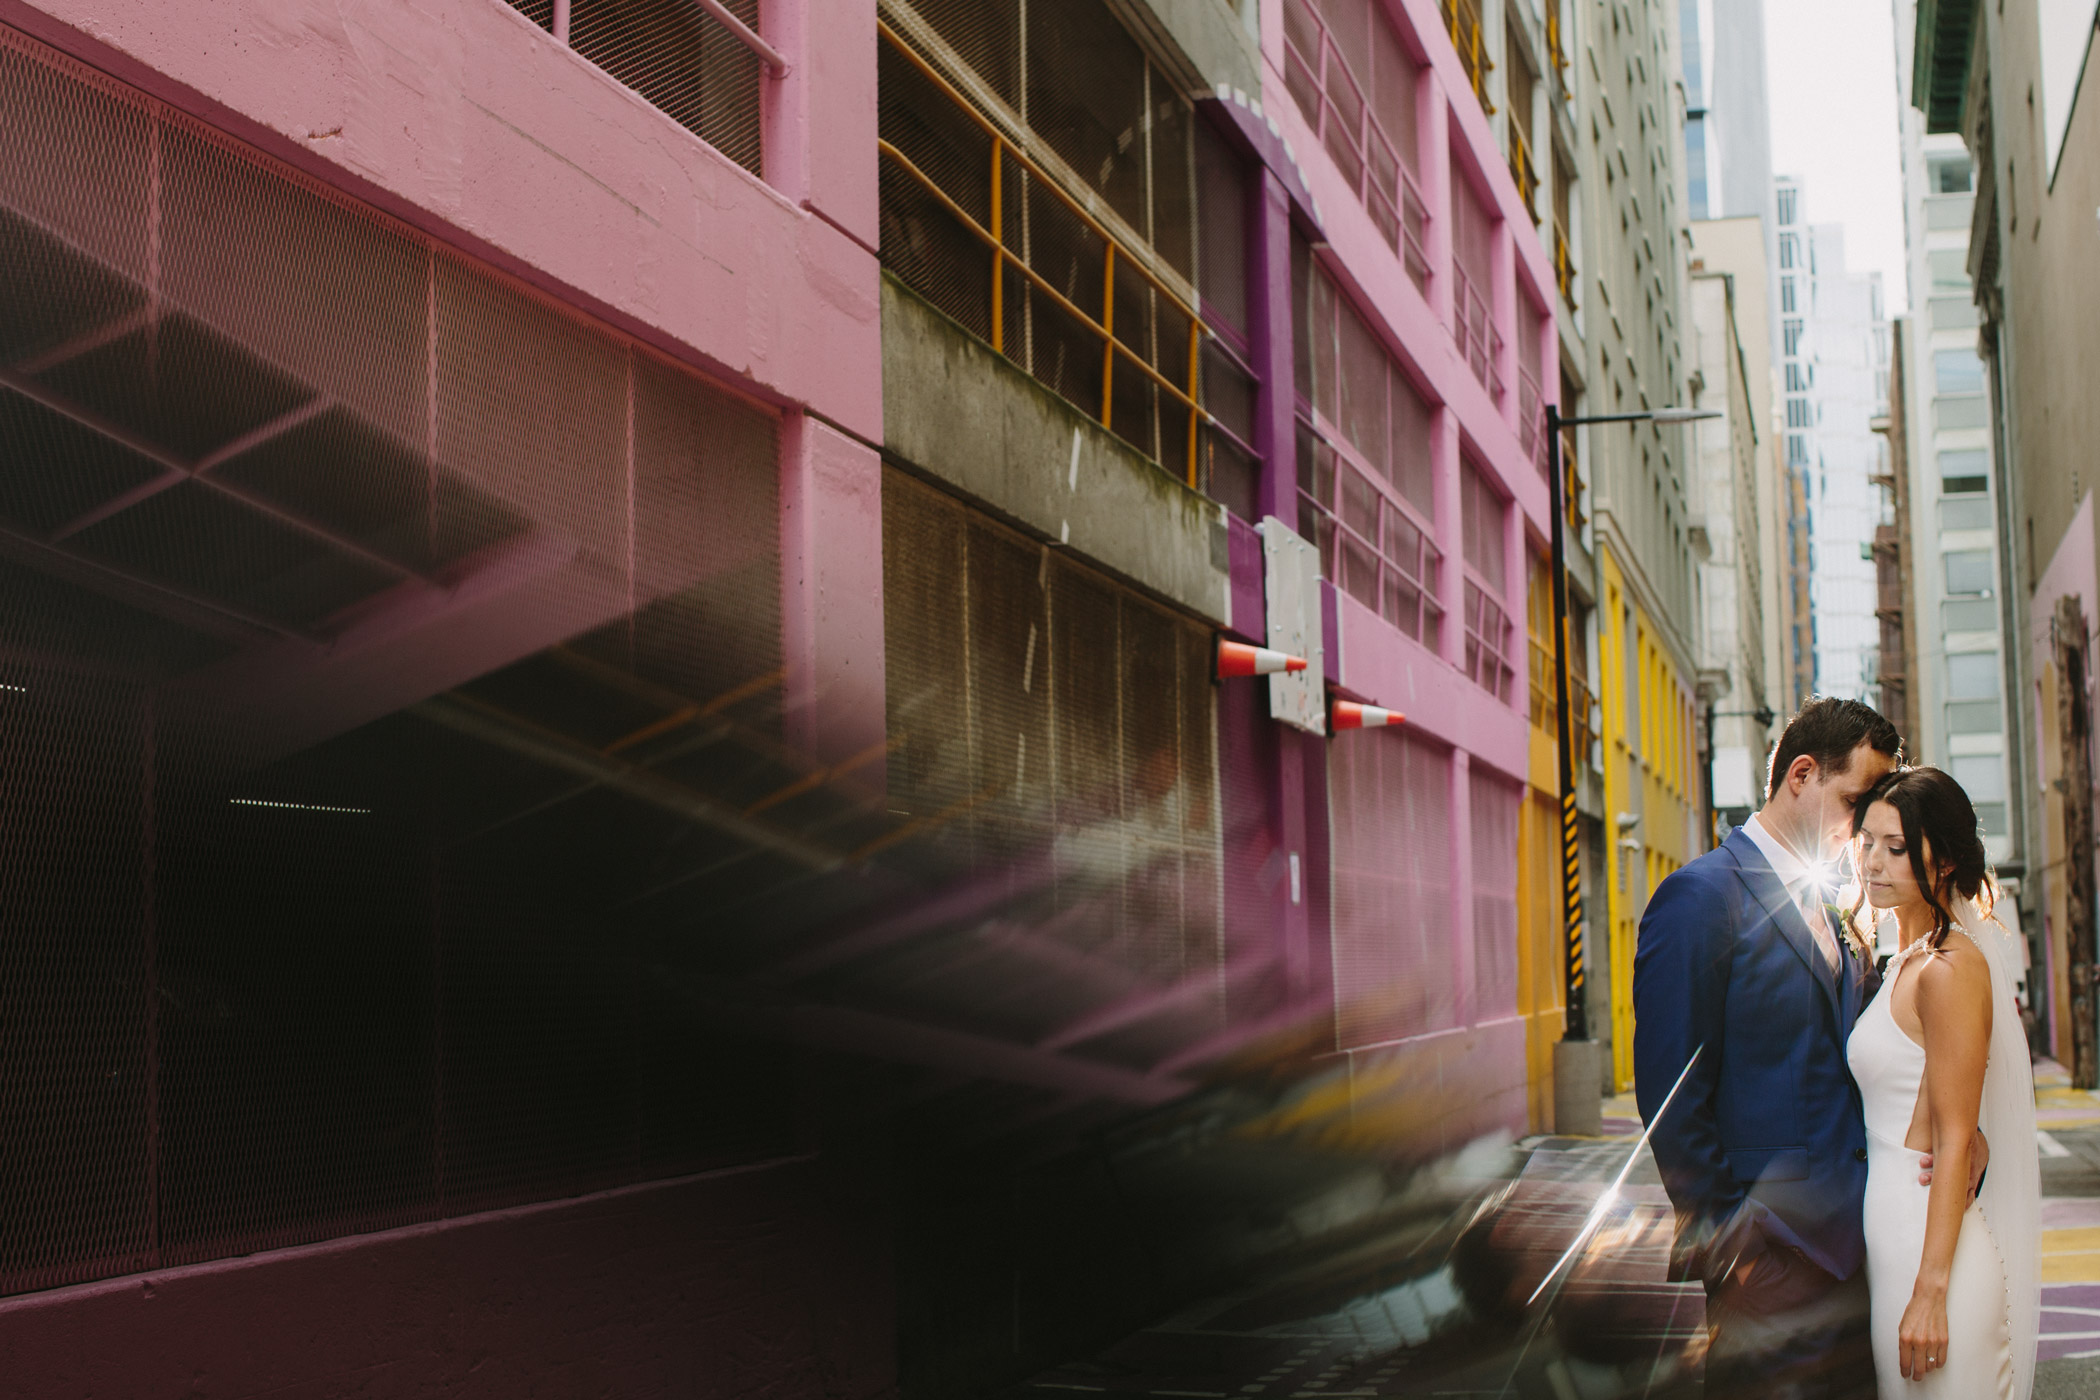 Reflection Portrait in Vancouver's Pink Alley